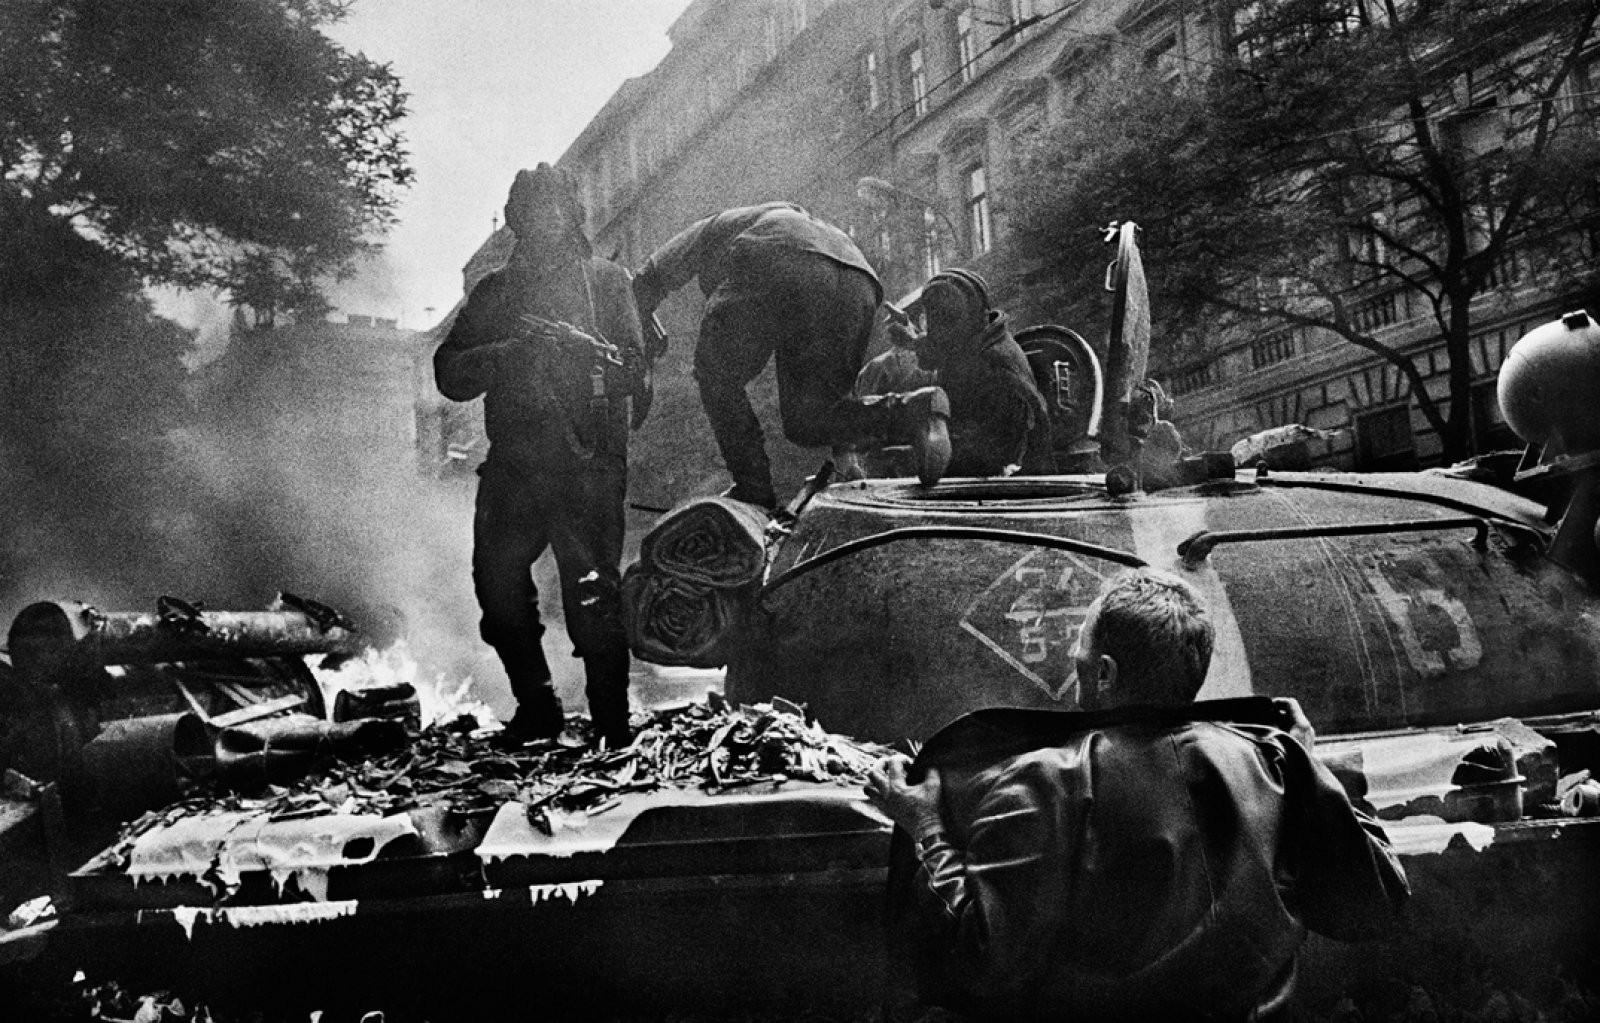 Prague Invasion. Czeschoslovaki,  August 1968 © Josef Koudelka / Magnum Photos